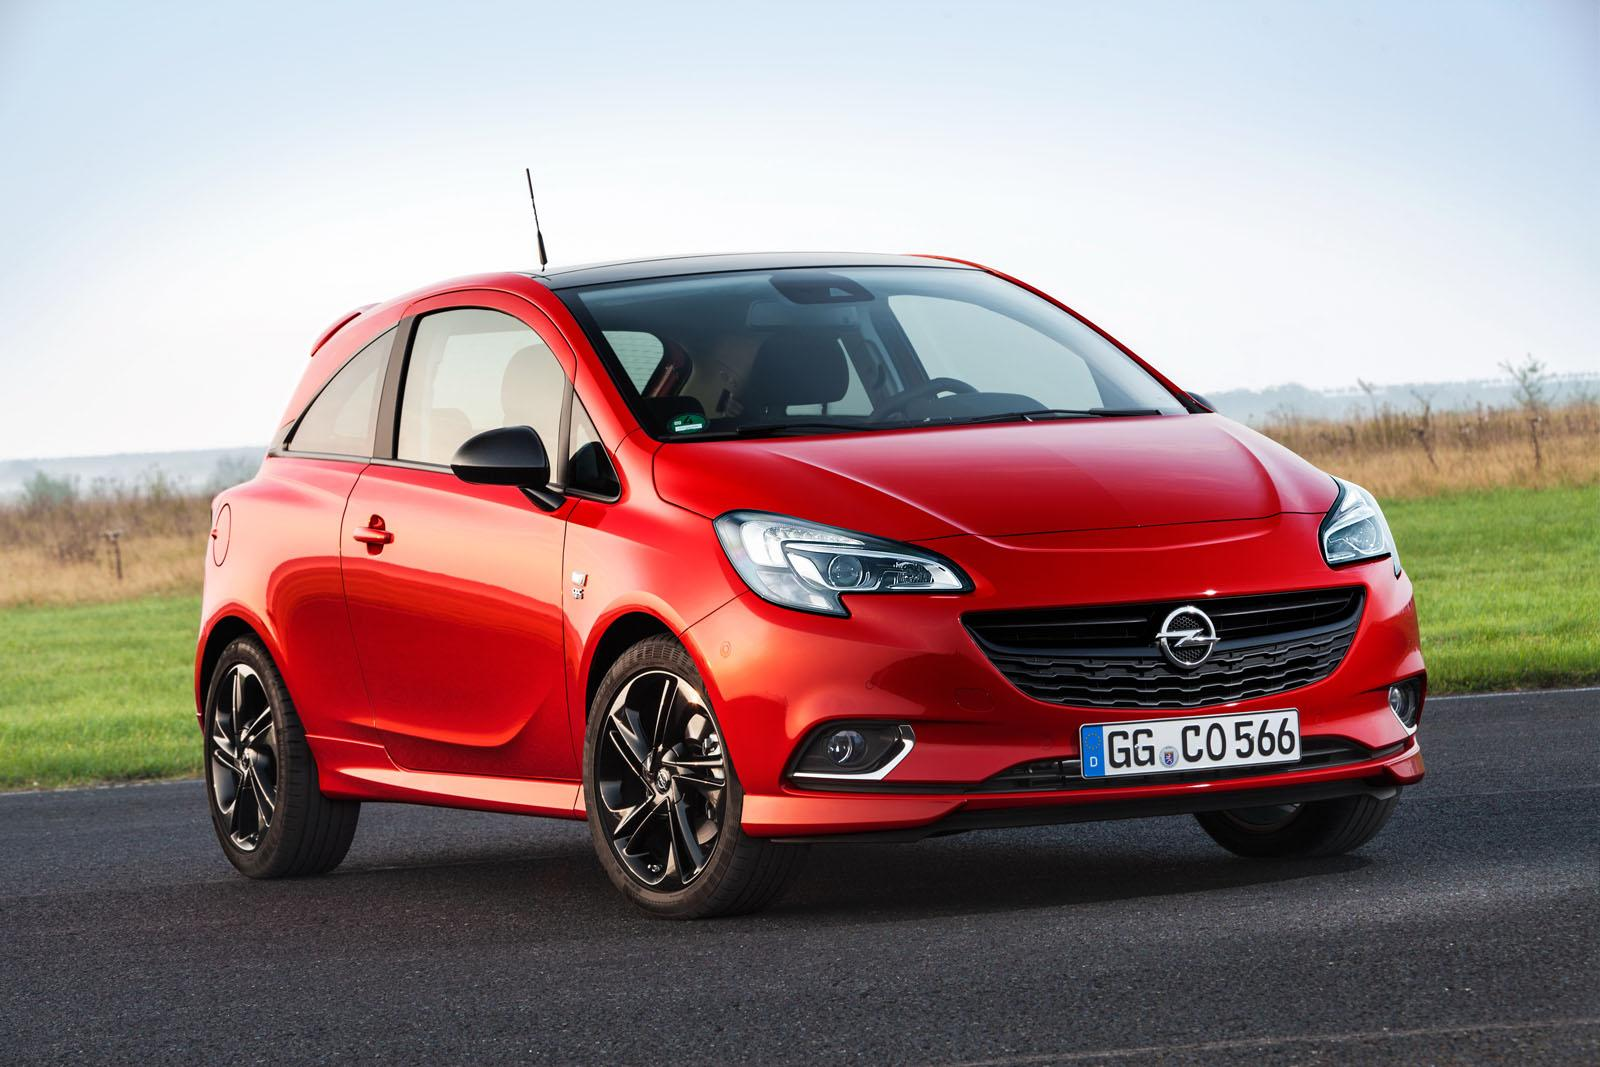 Opel Adam Opc Spoiler >> 2015 Opel Corsa Receives OPC Line Treatment - autoevolution